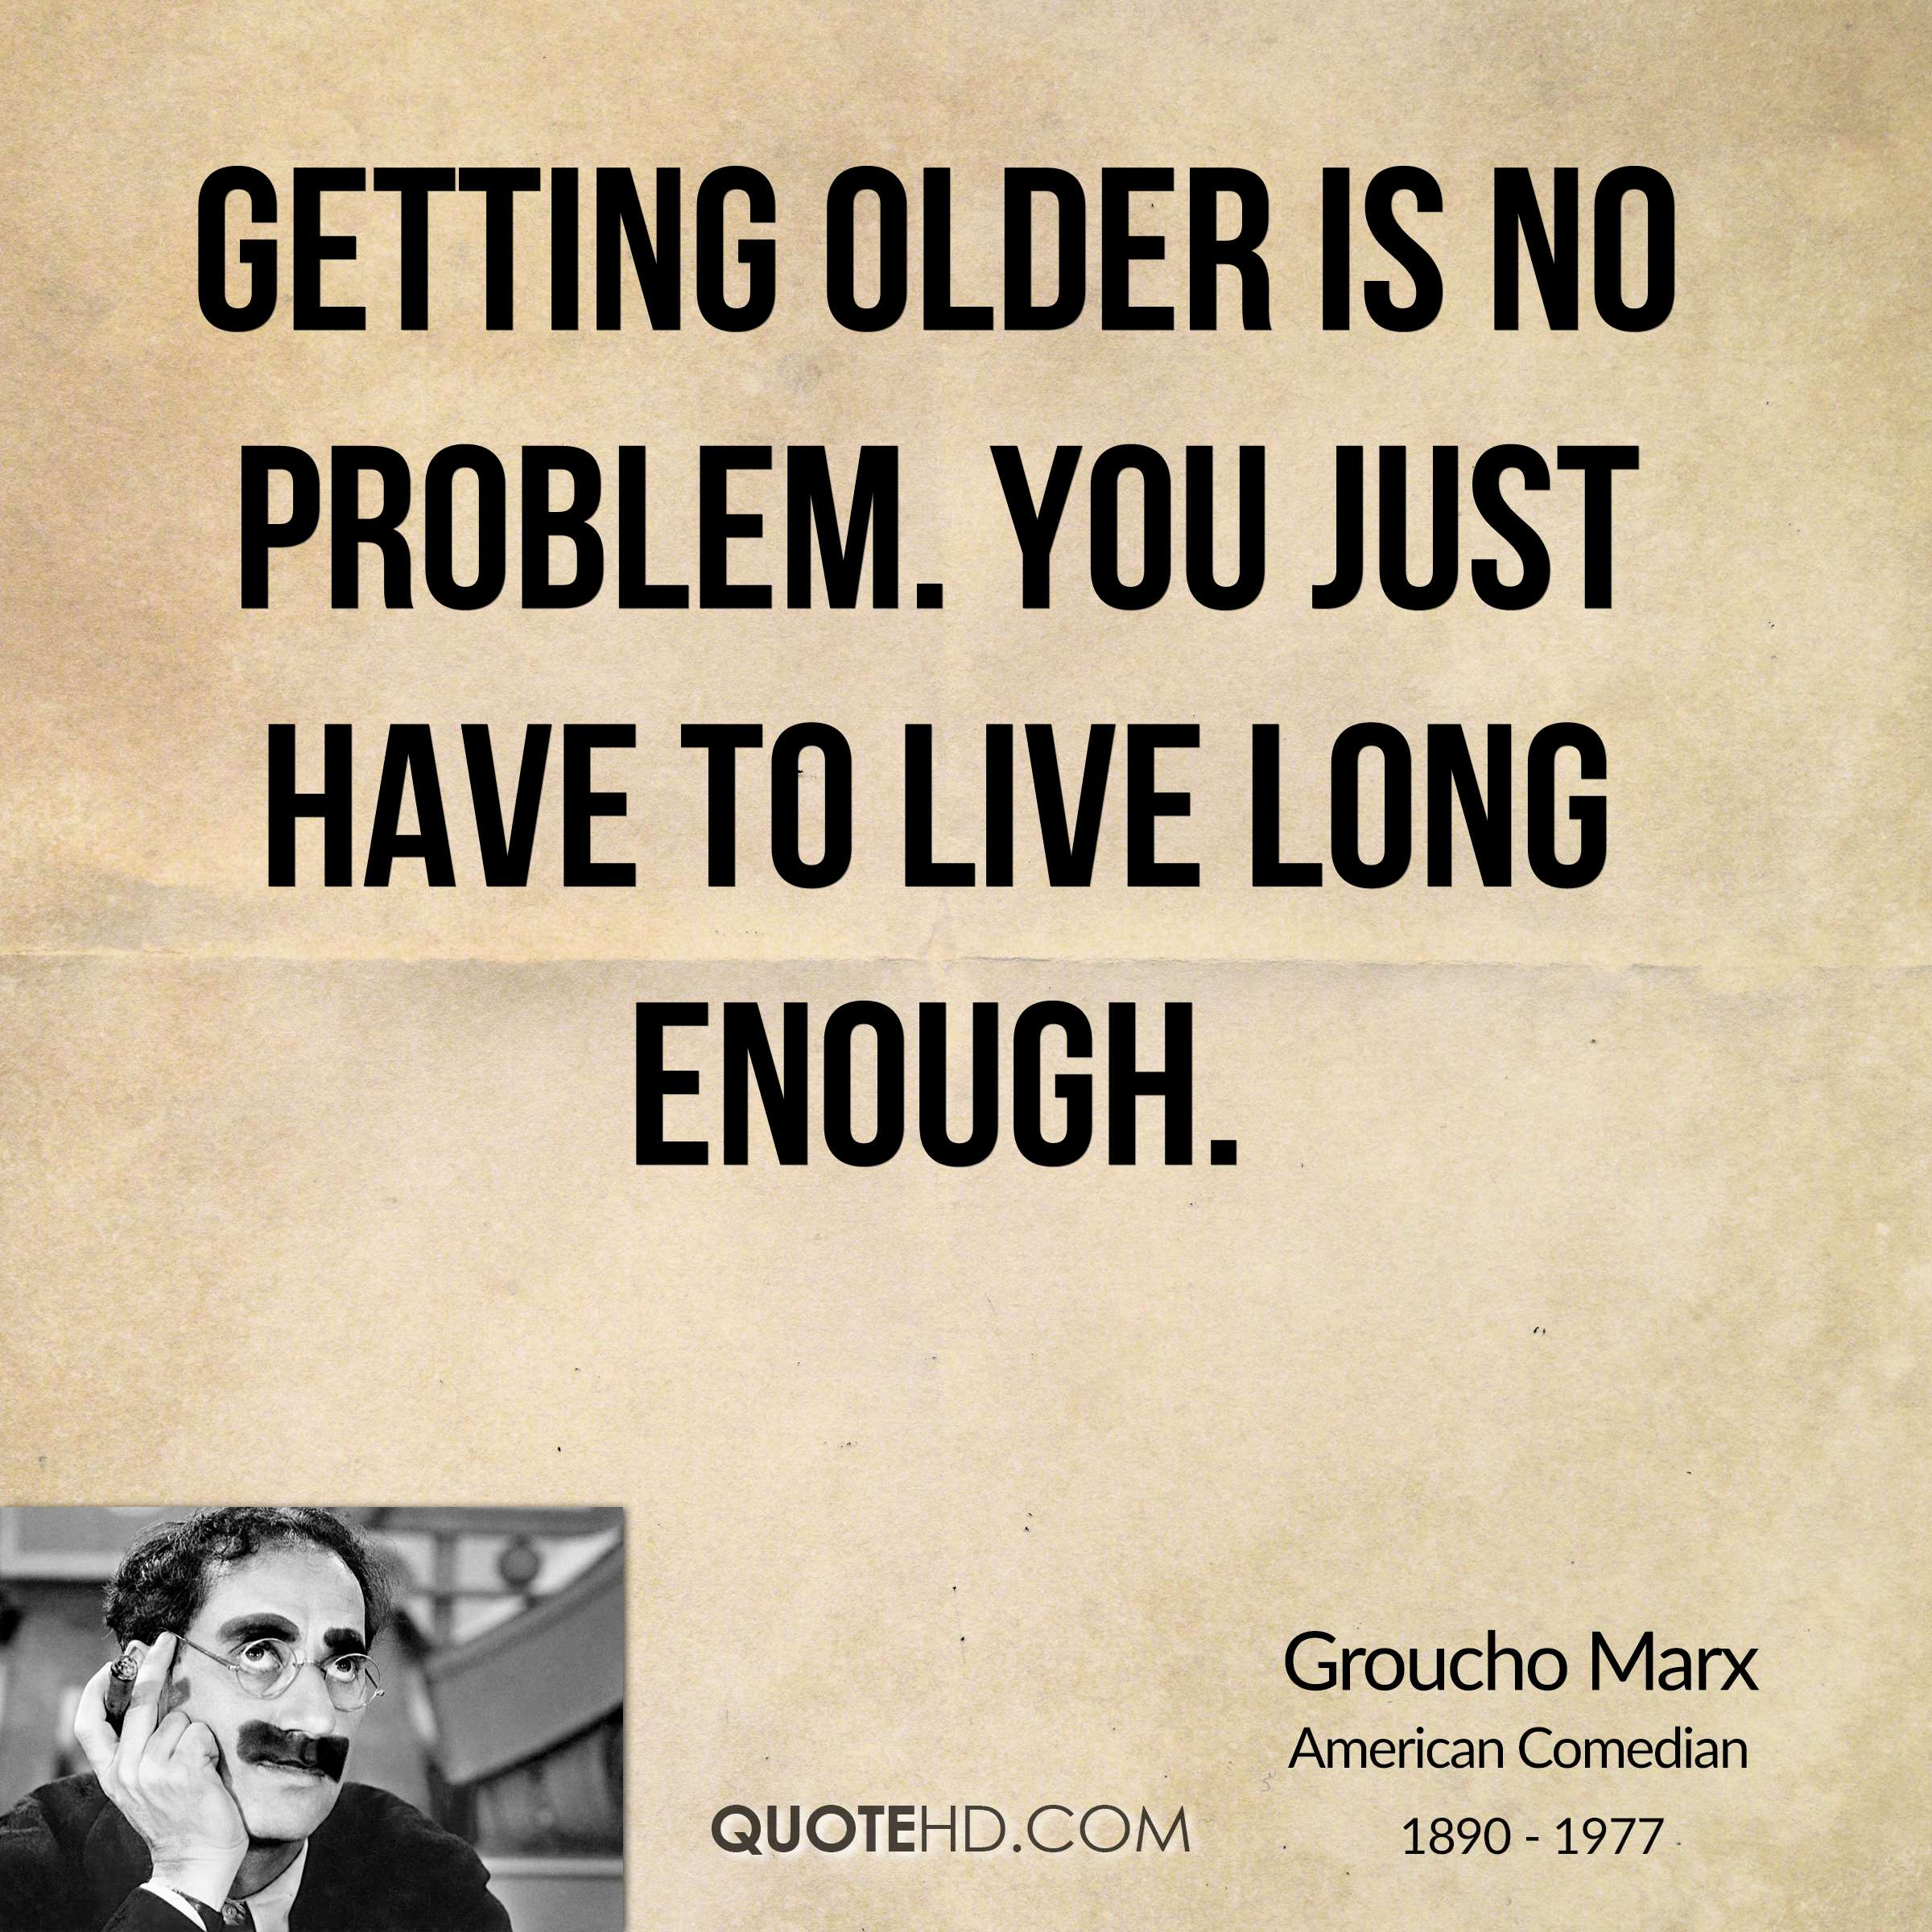 Getting older is no problem. You just have to live long enough.